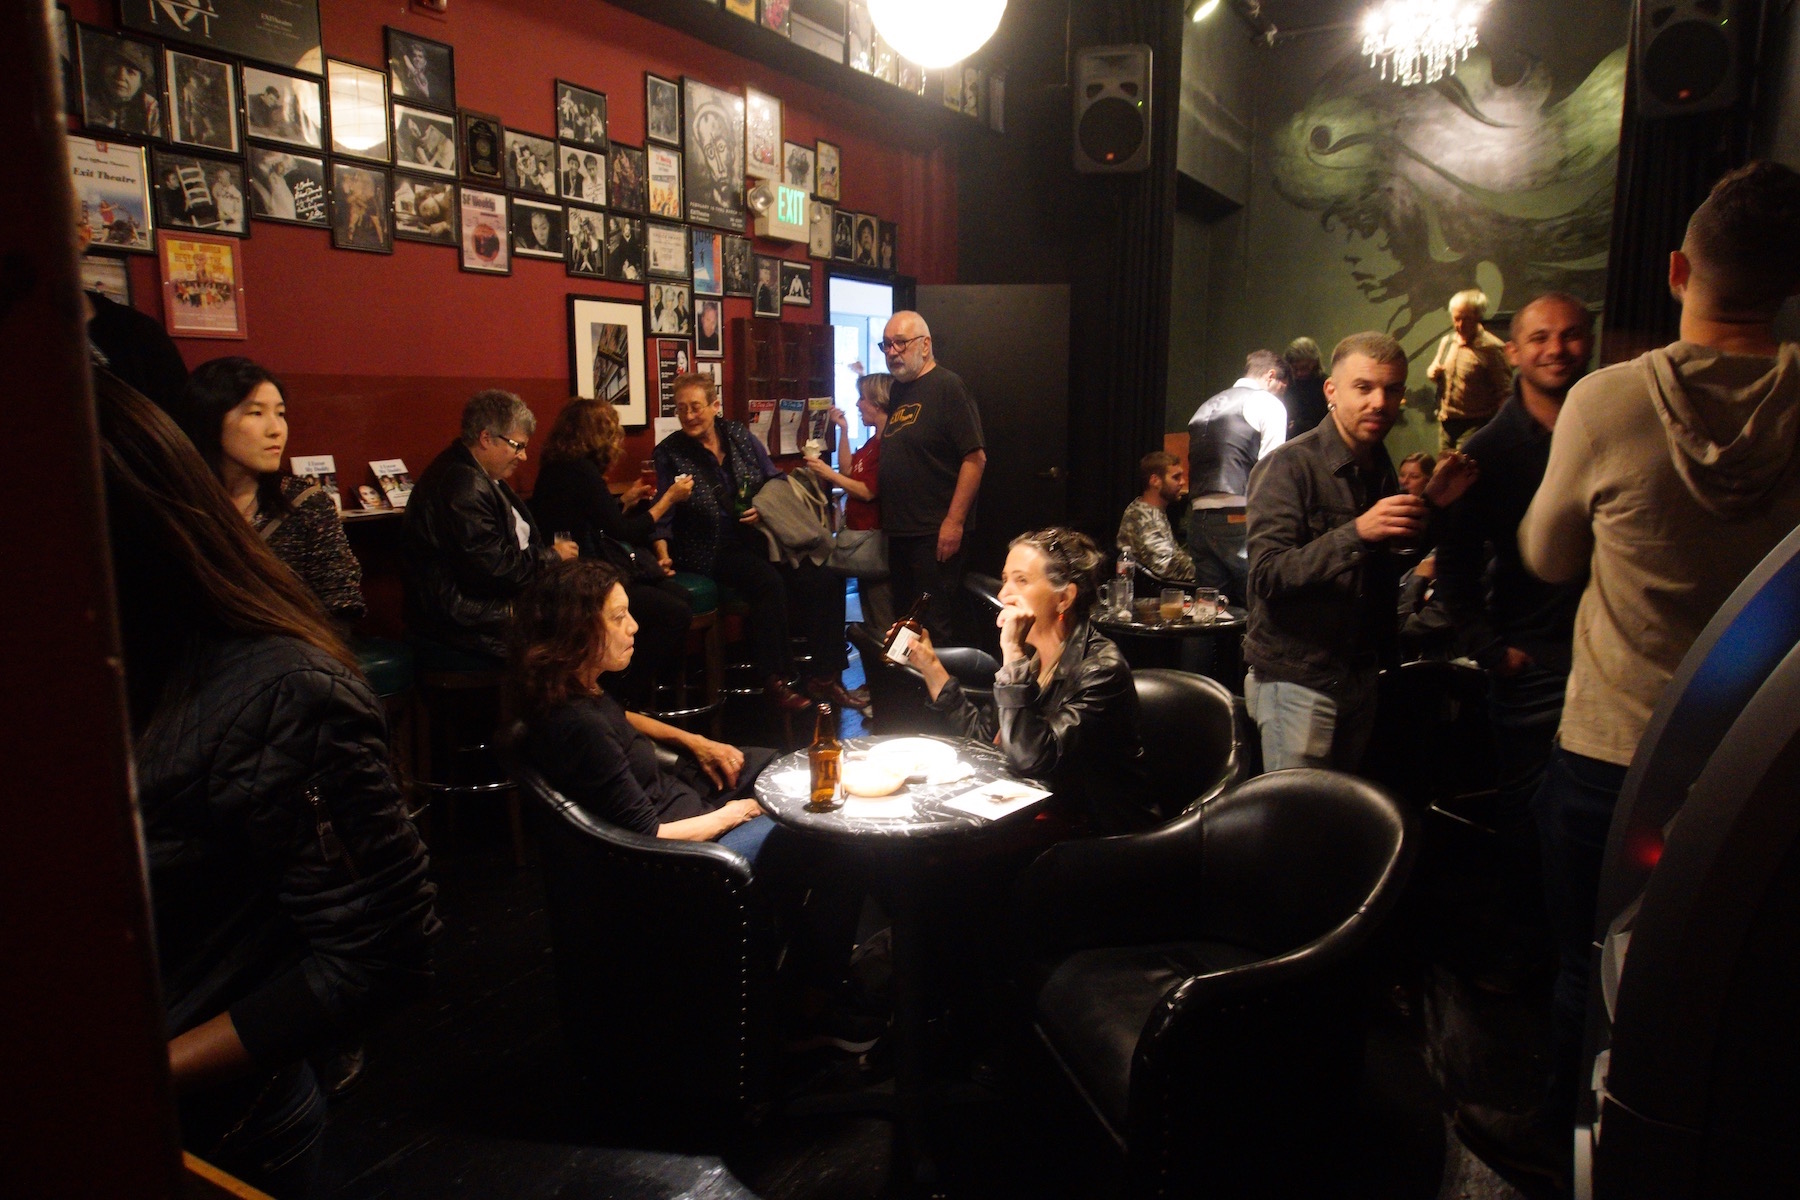 A crowd mingling in a dimly lit room with small round tables and large leather seats.